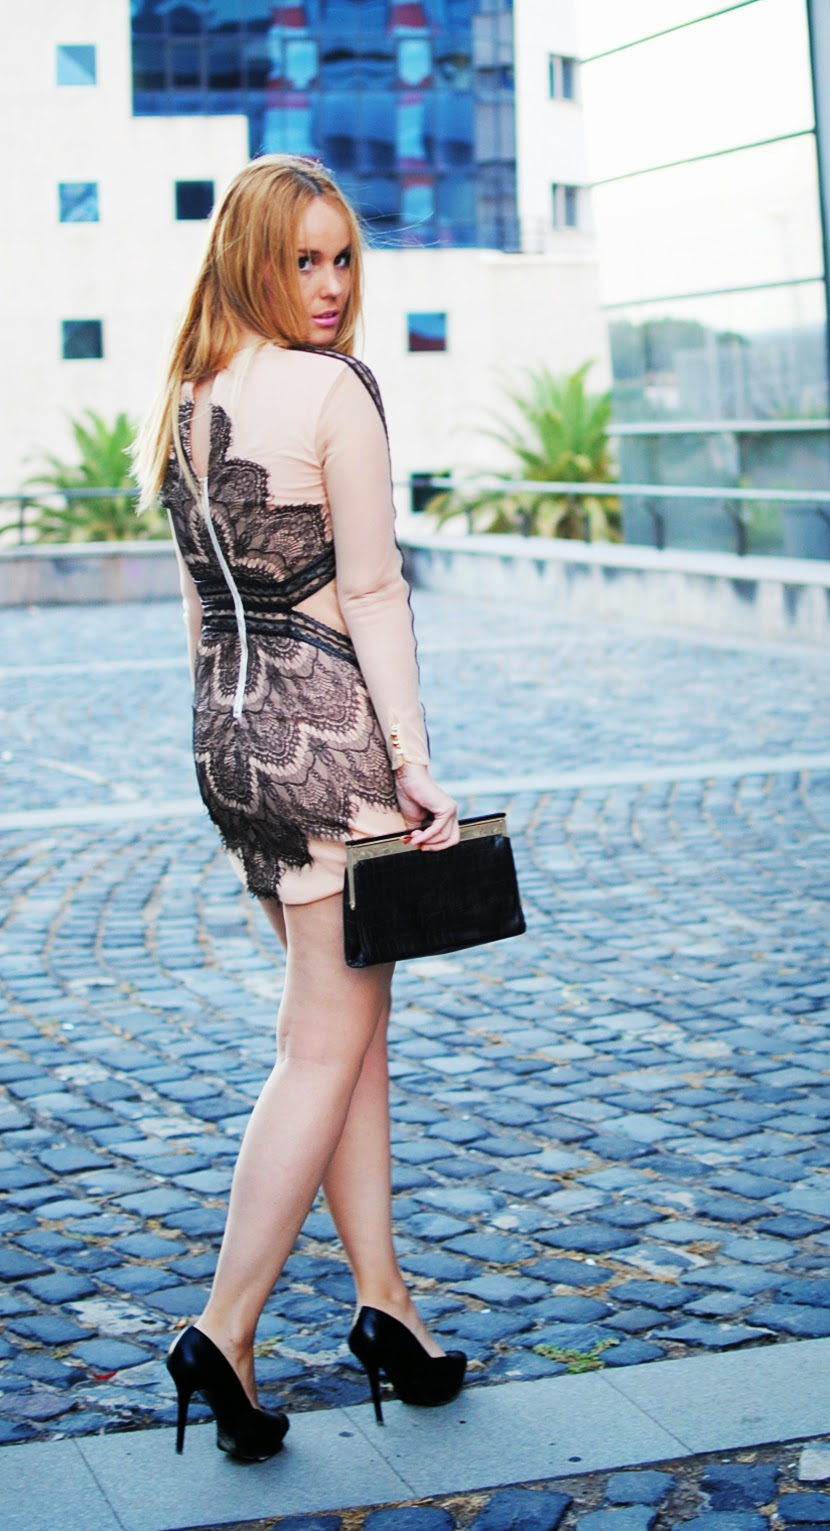 nery hdez, clon three floor, amanda seyfried mtv awards dress, chicwish blogger,